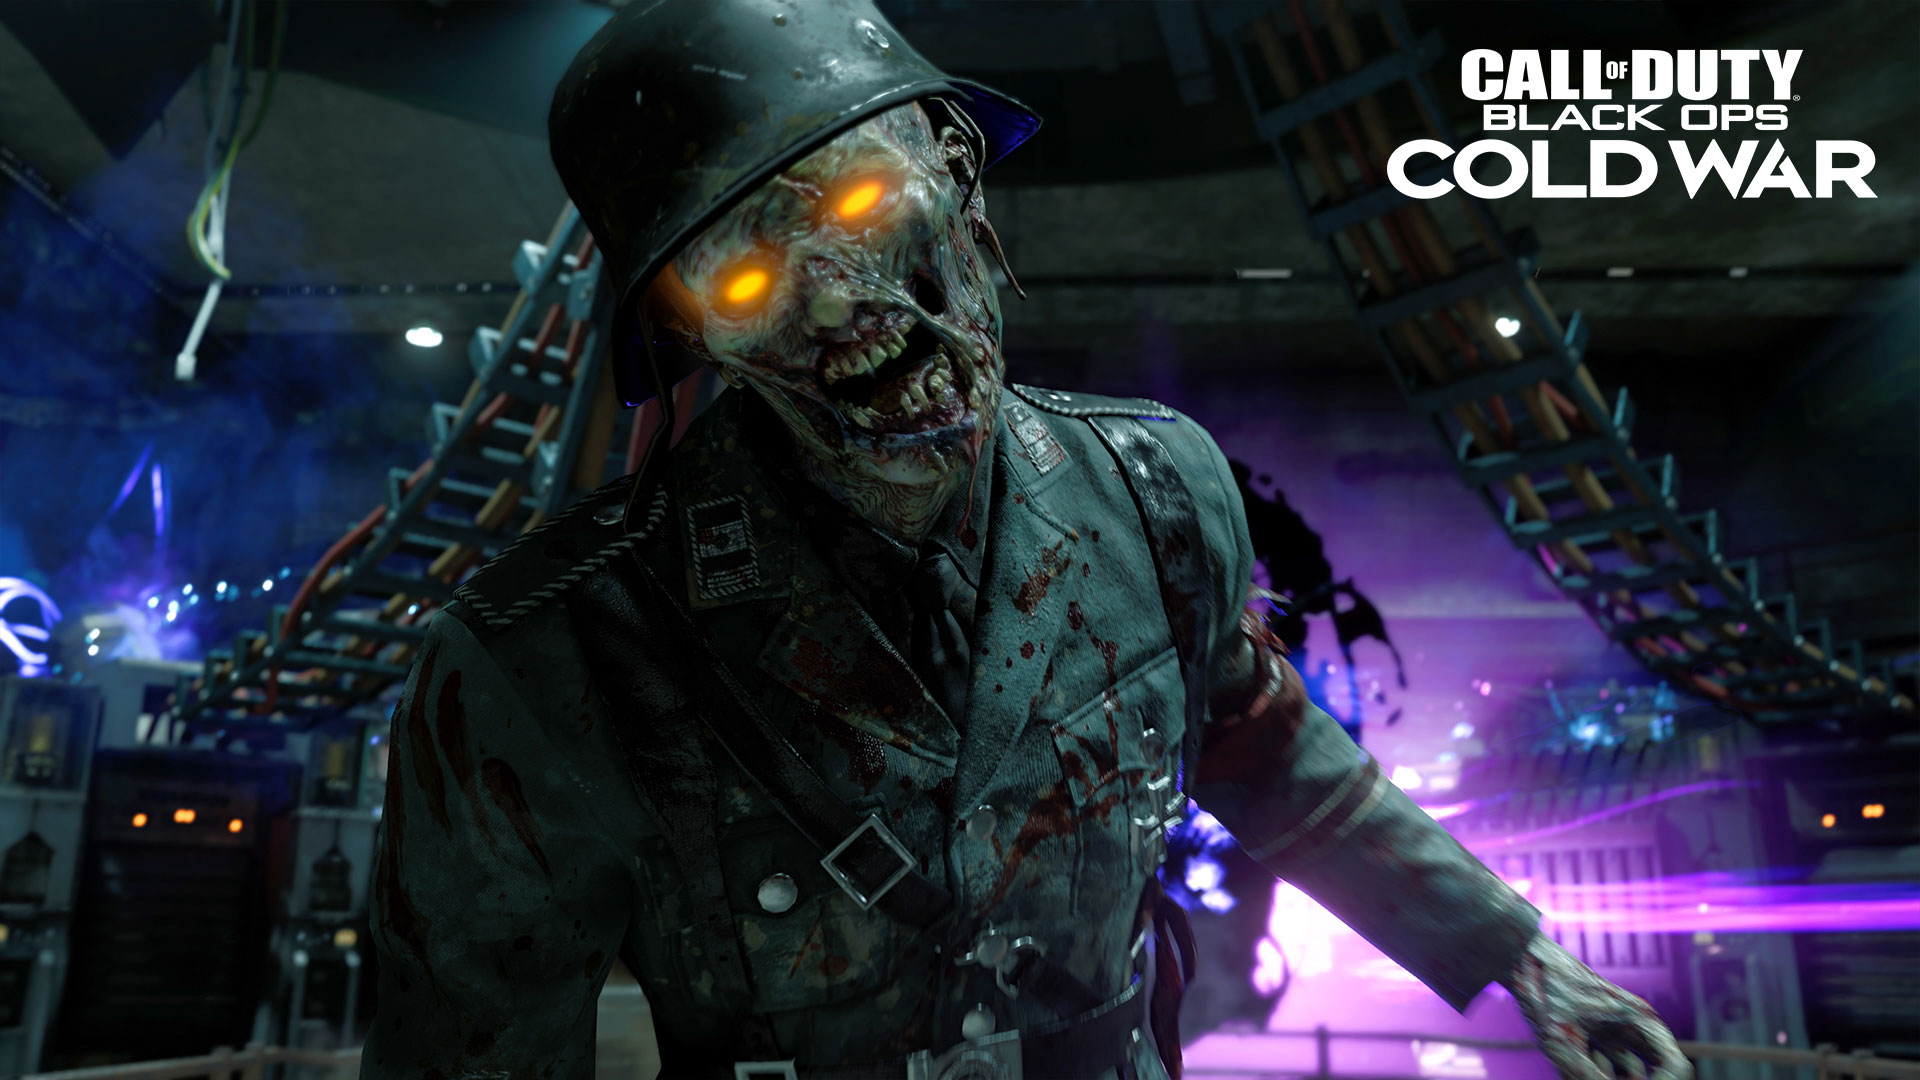 Black Ops Cold War Zombies Outbreak Mode (Credit: Treyarch)